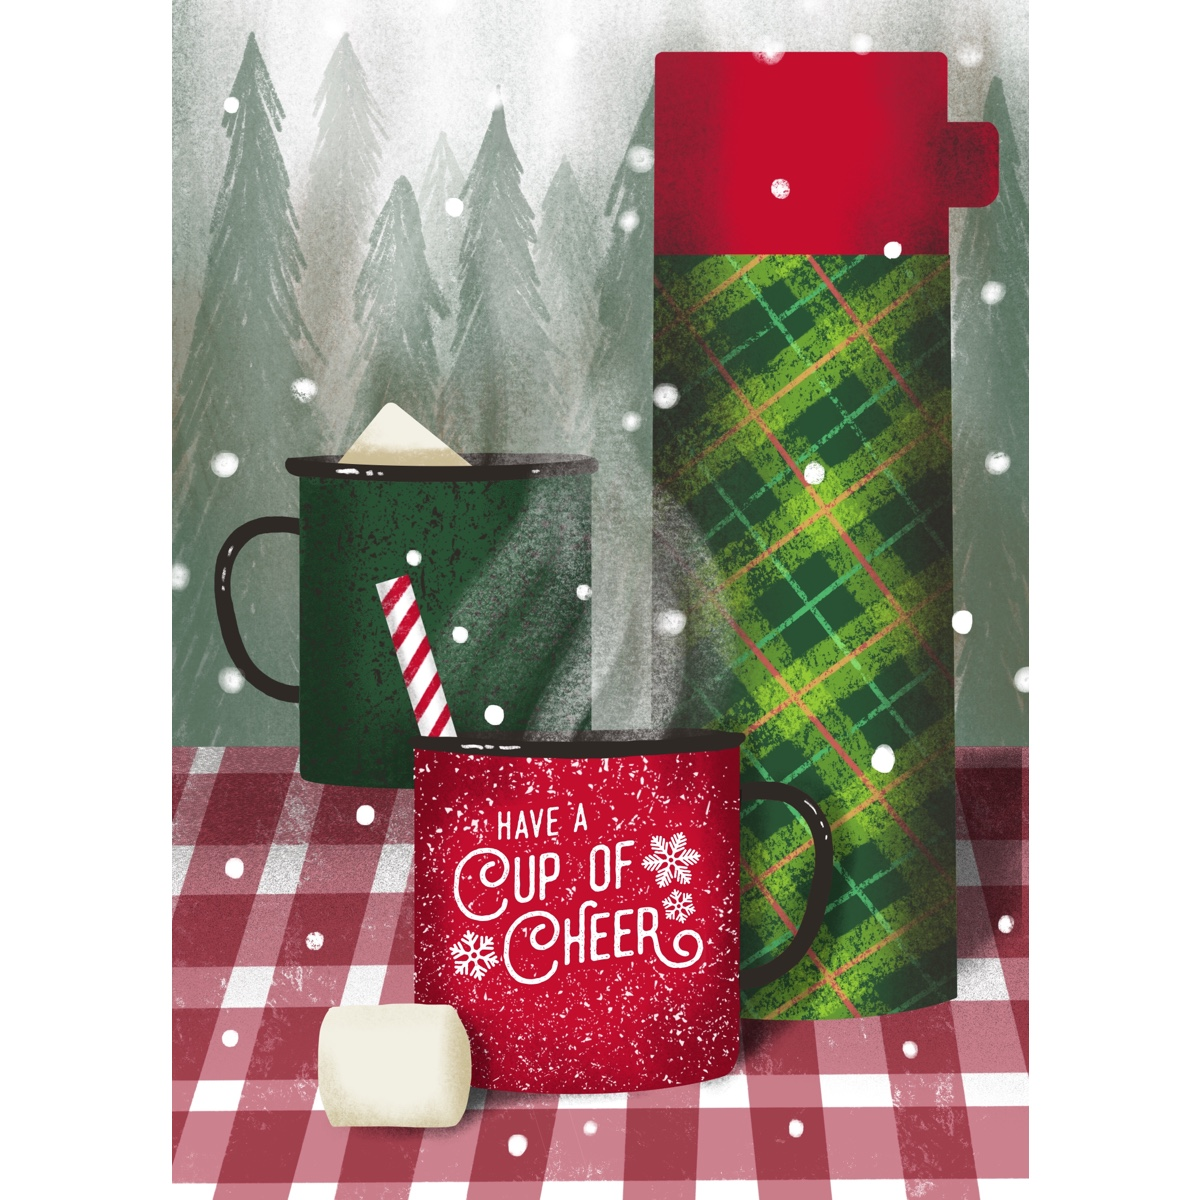 jjd-christmas_campfirehotchocolate